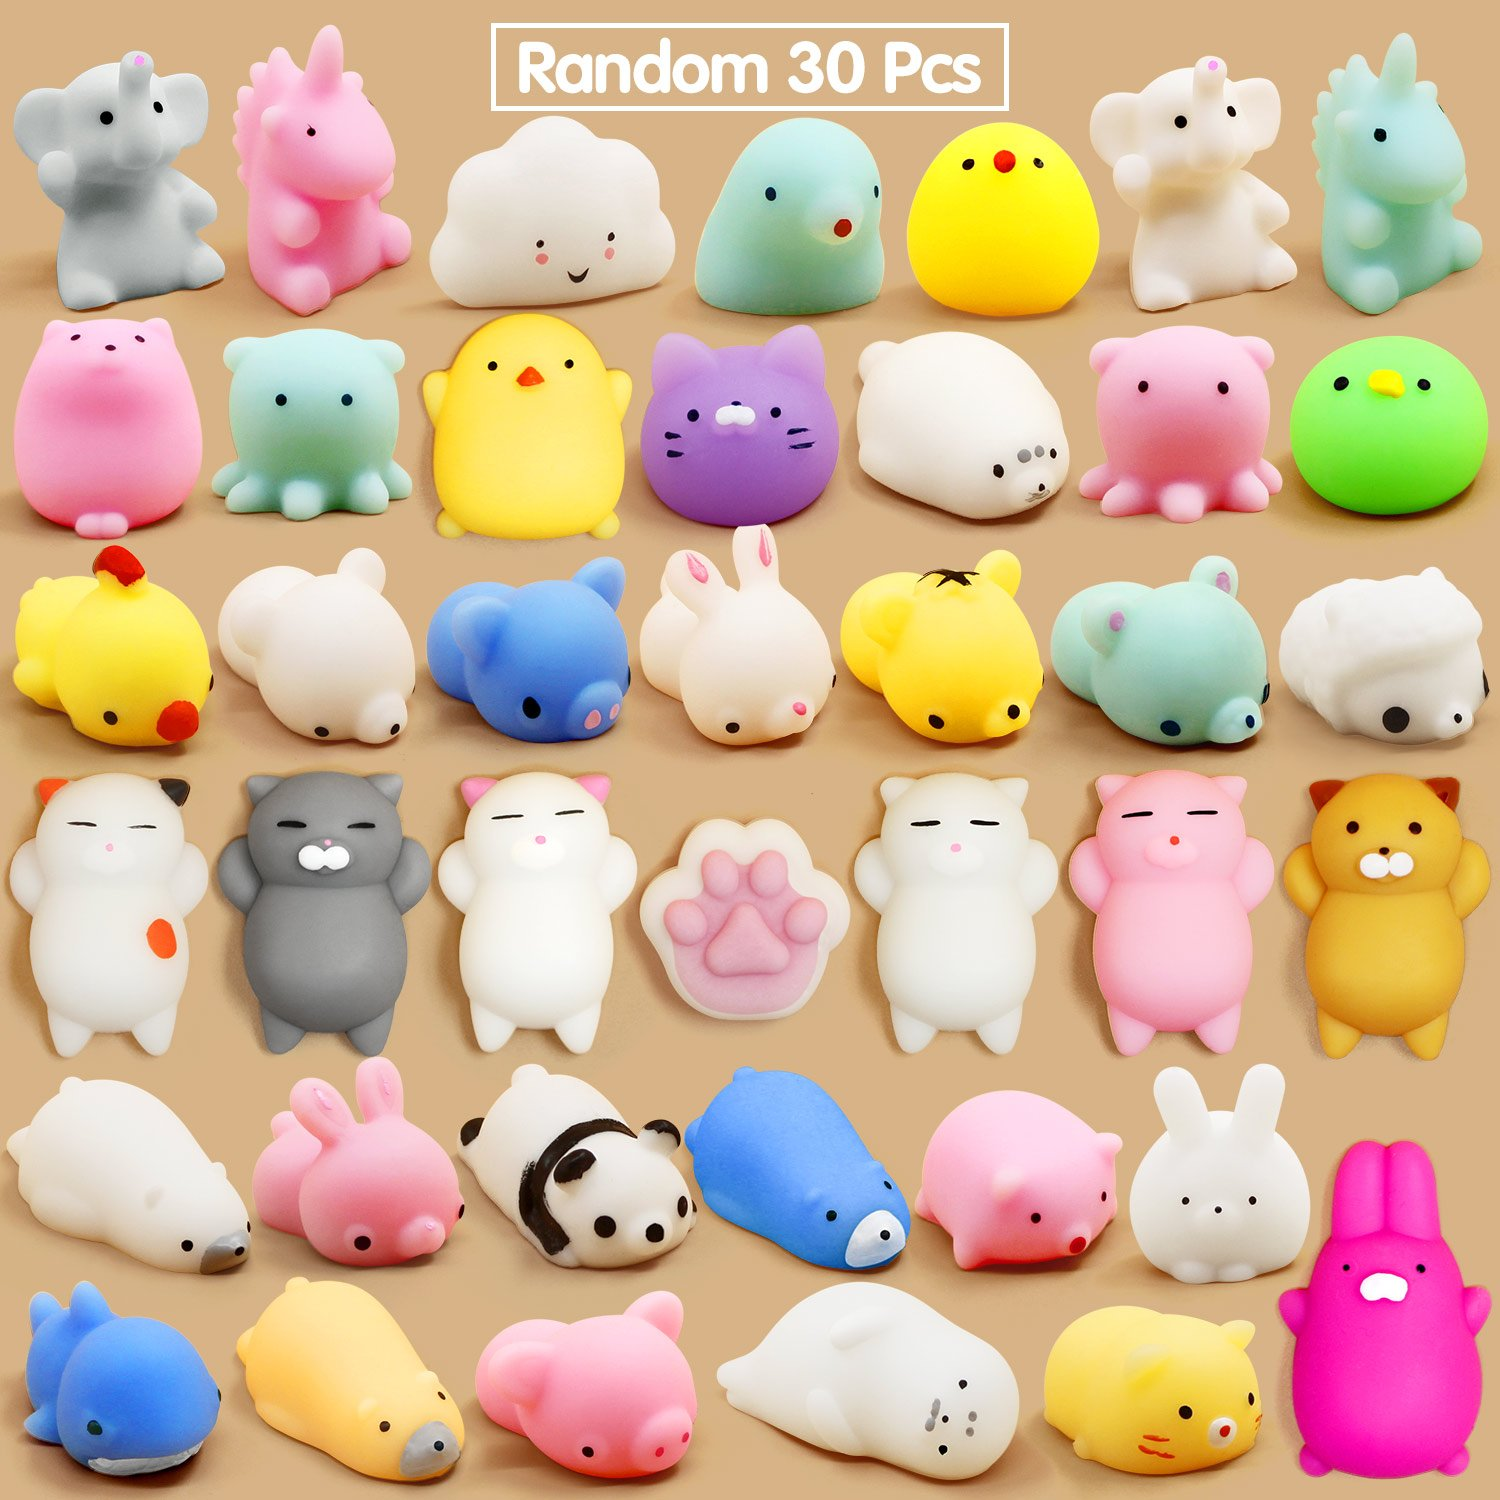 Calans Mochi Squishy Toys, 30 Pcs Mini Squishy Party Favors for kids Animal Squishies Stress Relief Toys Cat Panda Unicorn Squishy Squeeze Toys Kawaii Squishies Birthday Gifts for Boys & Girls Random by Calans